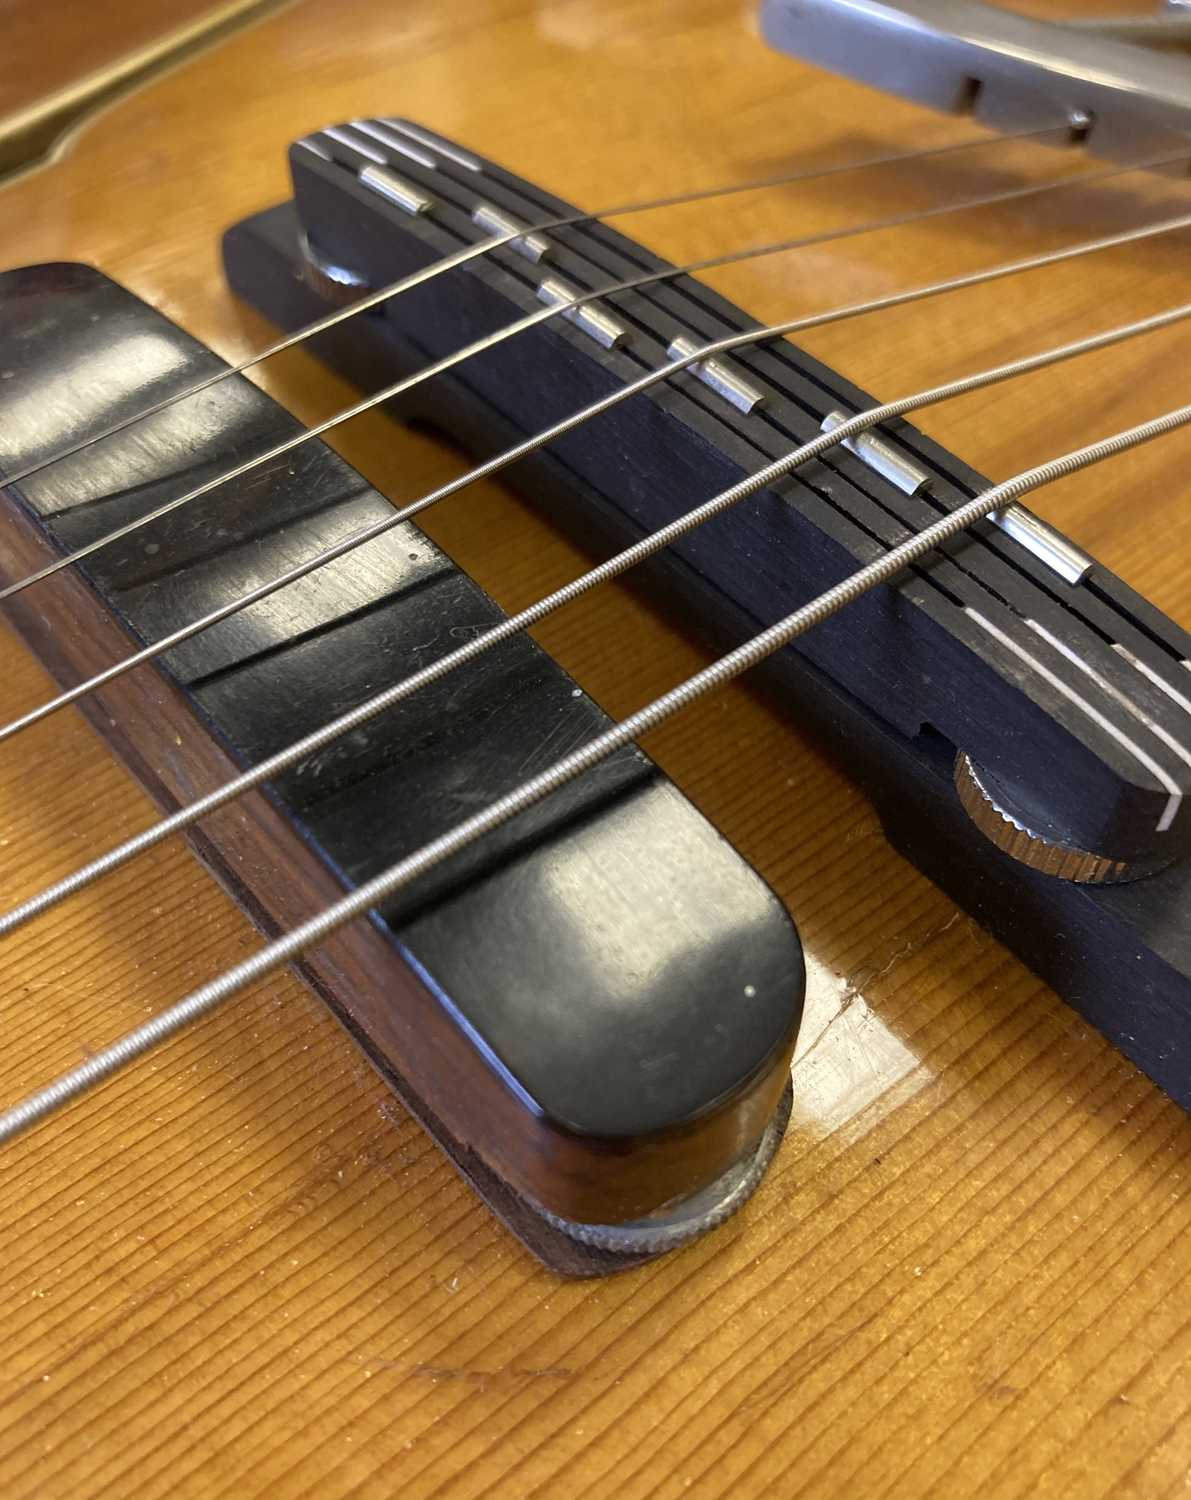 HOFNER - 1957 COMMITTEE ELECTRIC GUITAR - USED AS RESIDENT GUITAR AT THE 2'IS COFFEE CLUB - Image 5 of 17